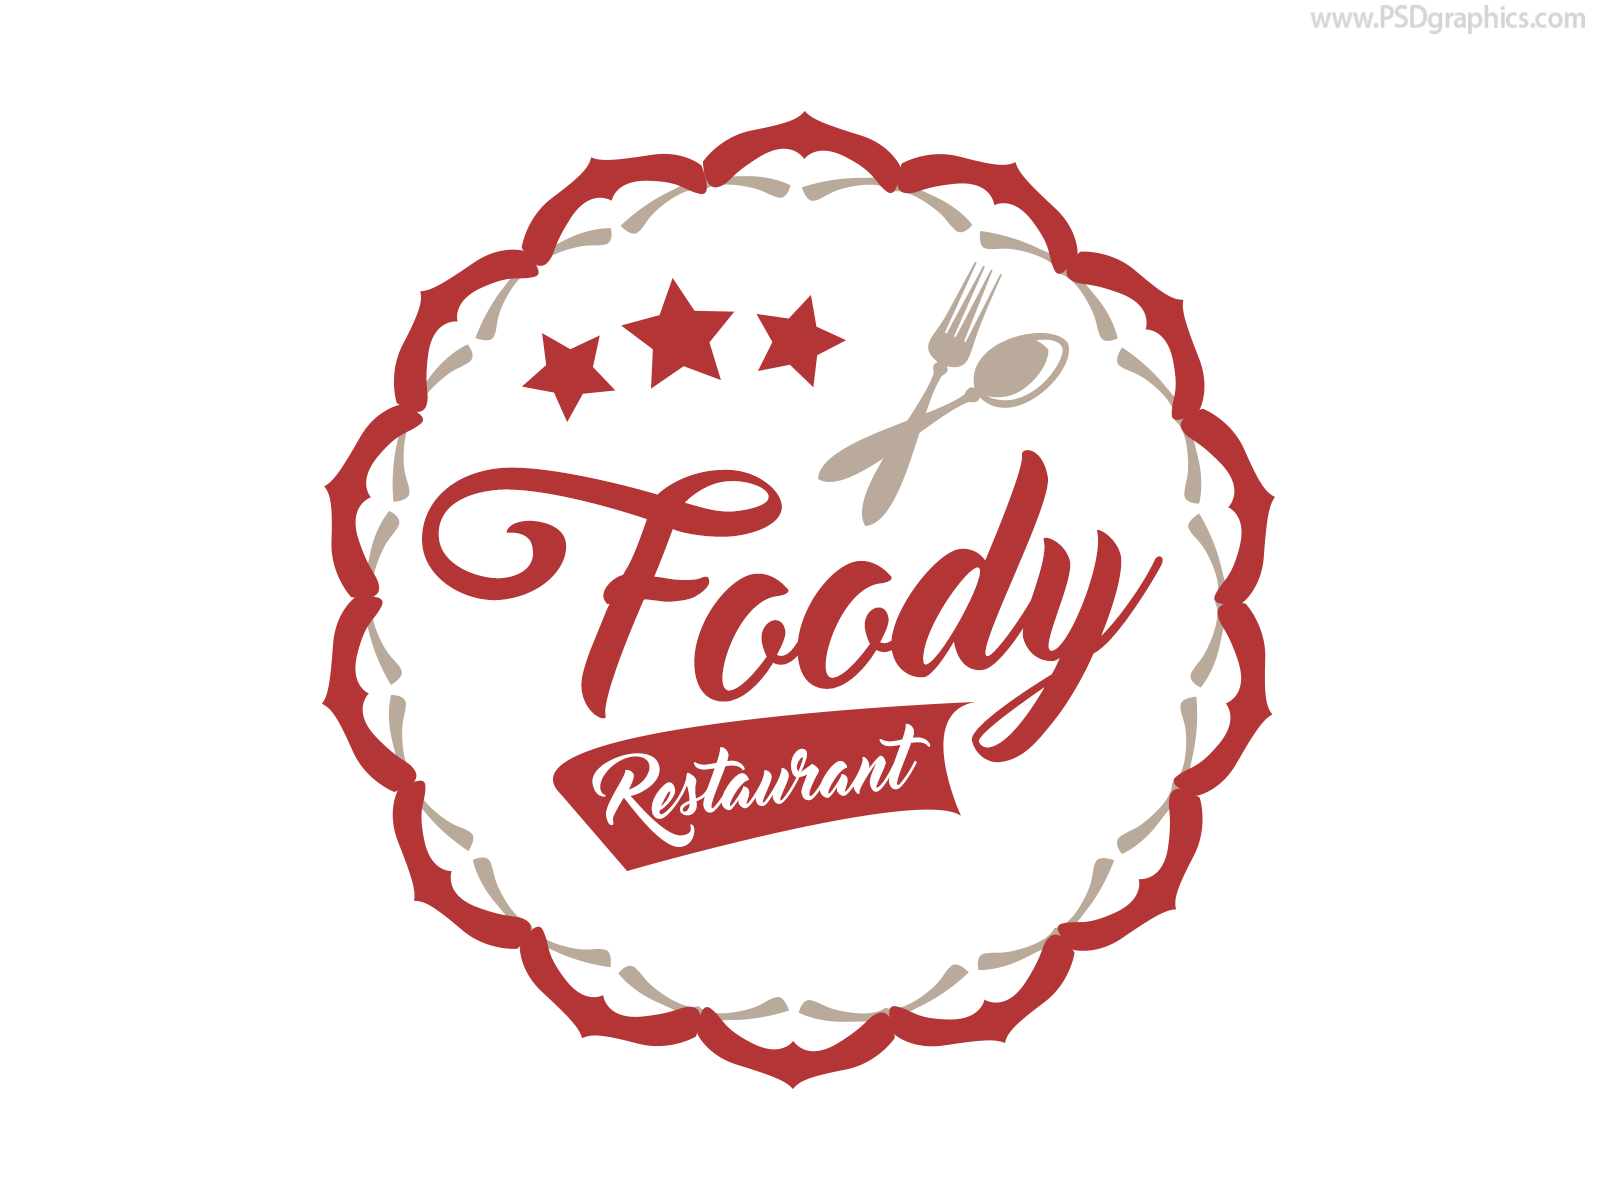 restaurant label or logo, ai and psd | psdgraphics